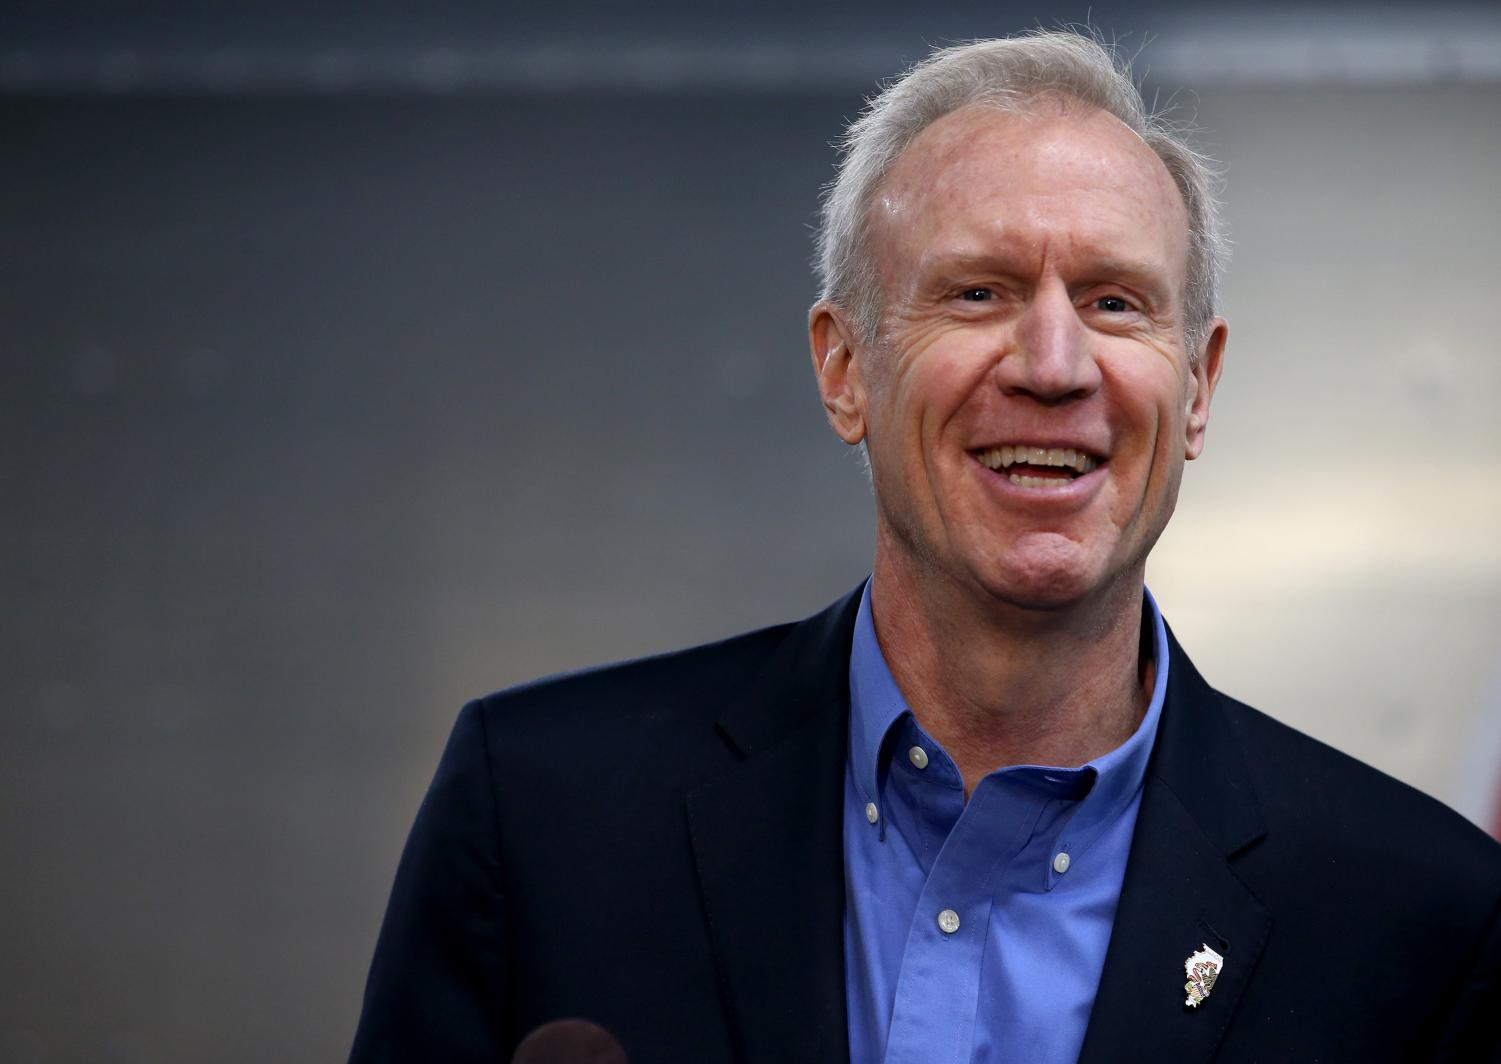 Governor Bruce Rauner speaks out during a press conference for an announcement of a donation from AptarGroup and Adapt Pharma, Thursday, Feb. 8,2018.  The donation will go to help prevent opioid deaths.